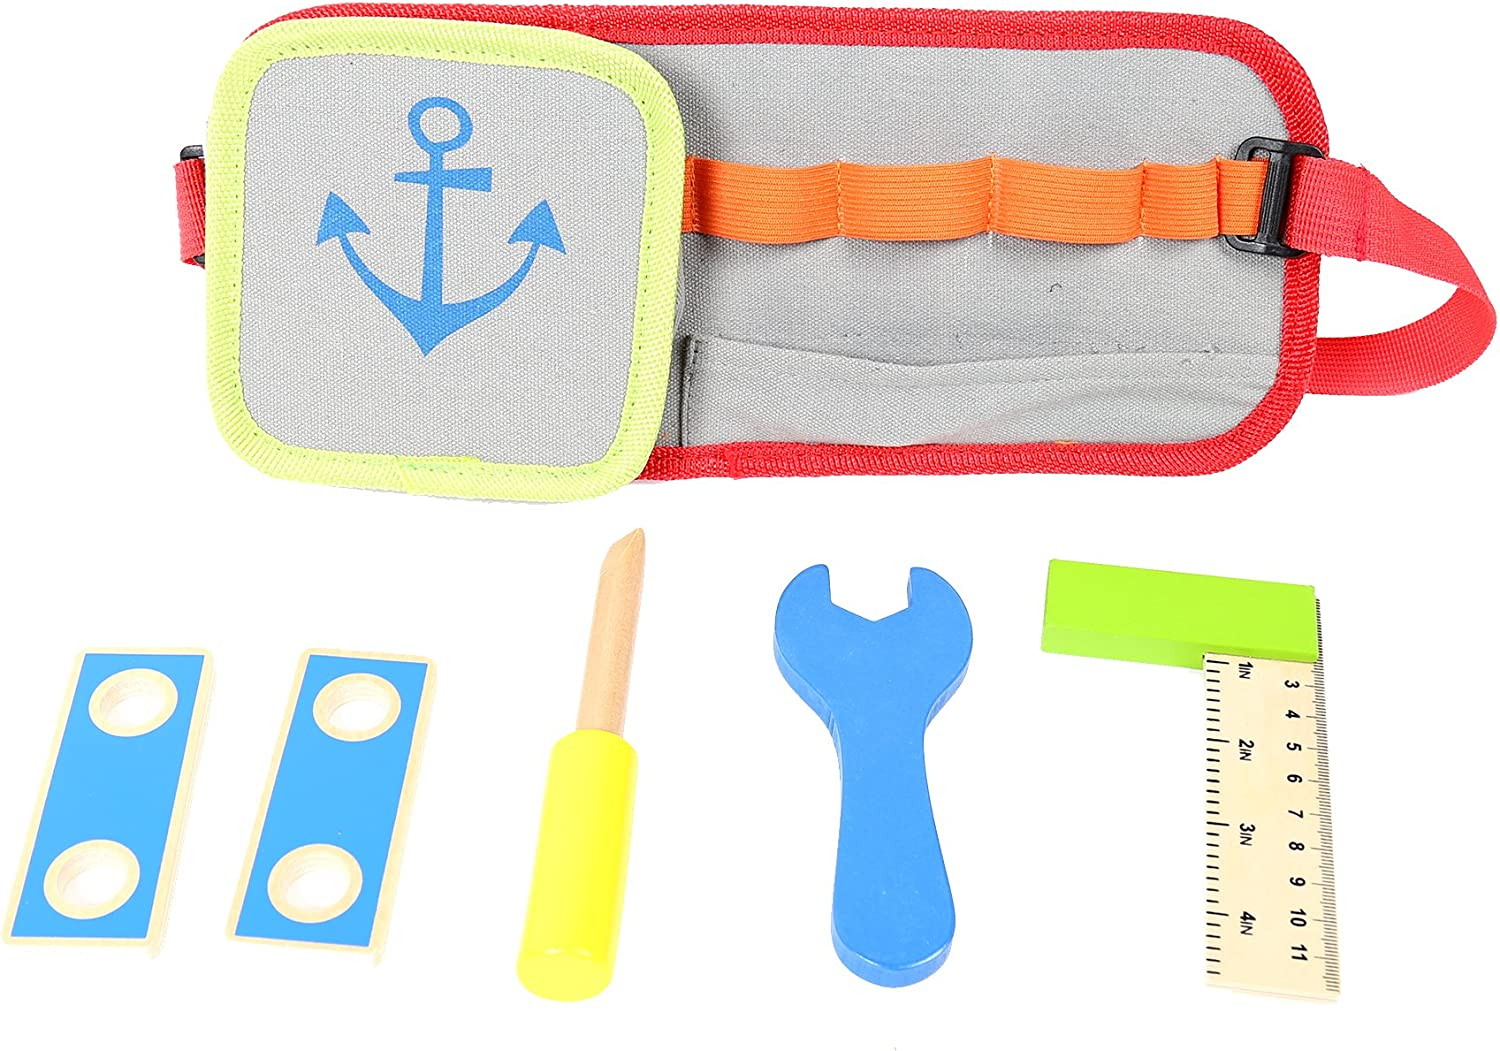 Tooky Toy Tool Belt 16.14 x 7.48 x 1.57 inches